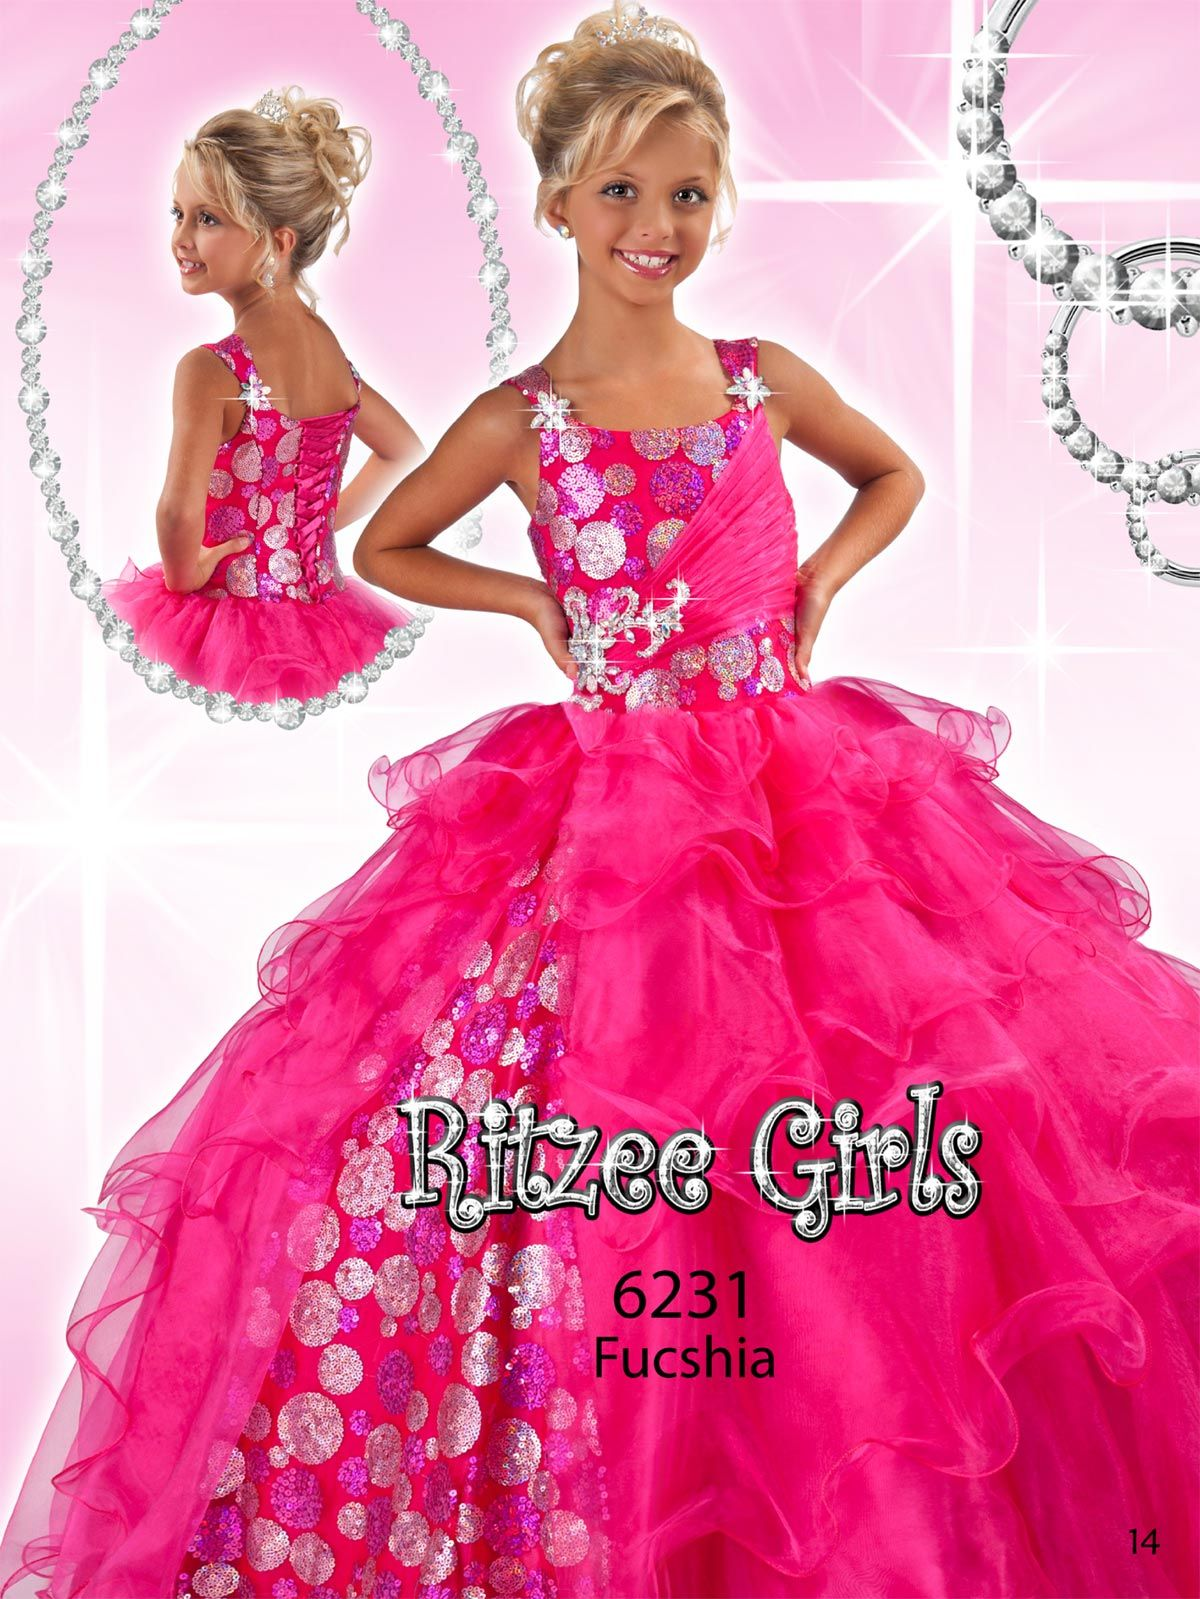 1000  images about glizt on Pinterest  Girls pageant dresses ...